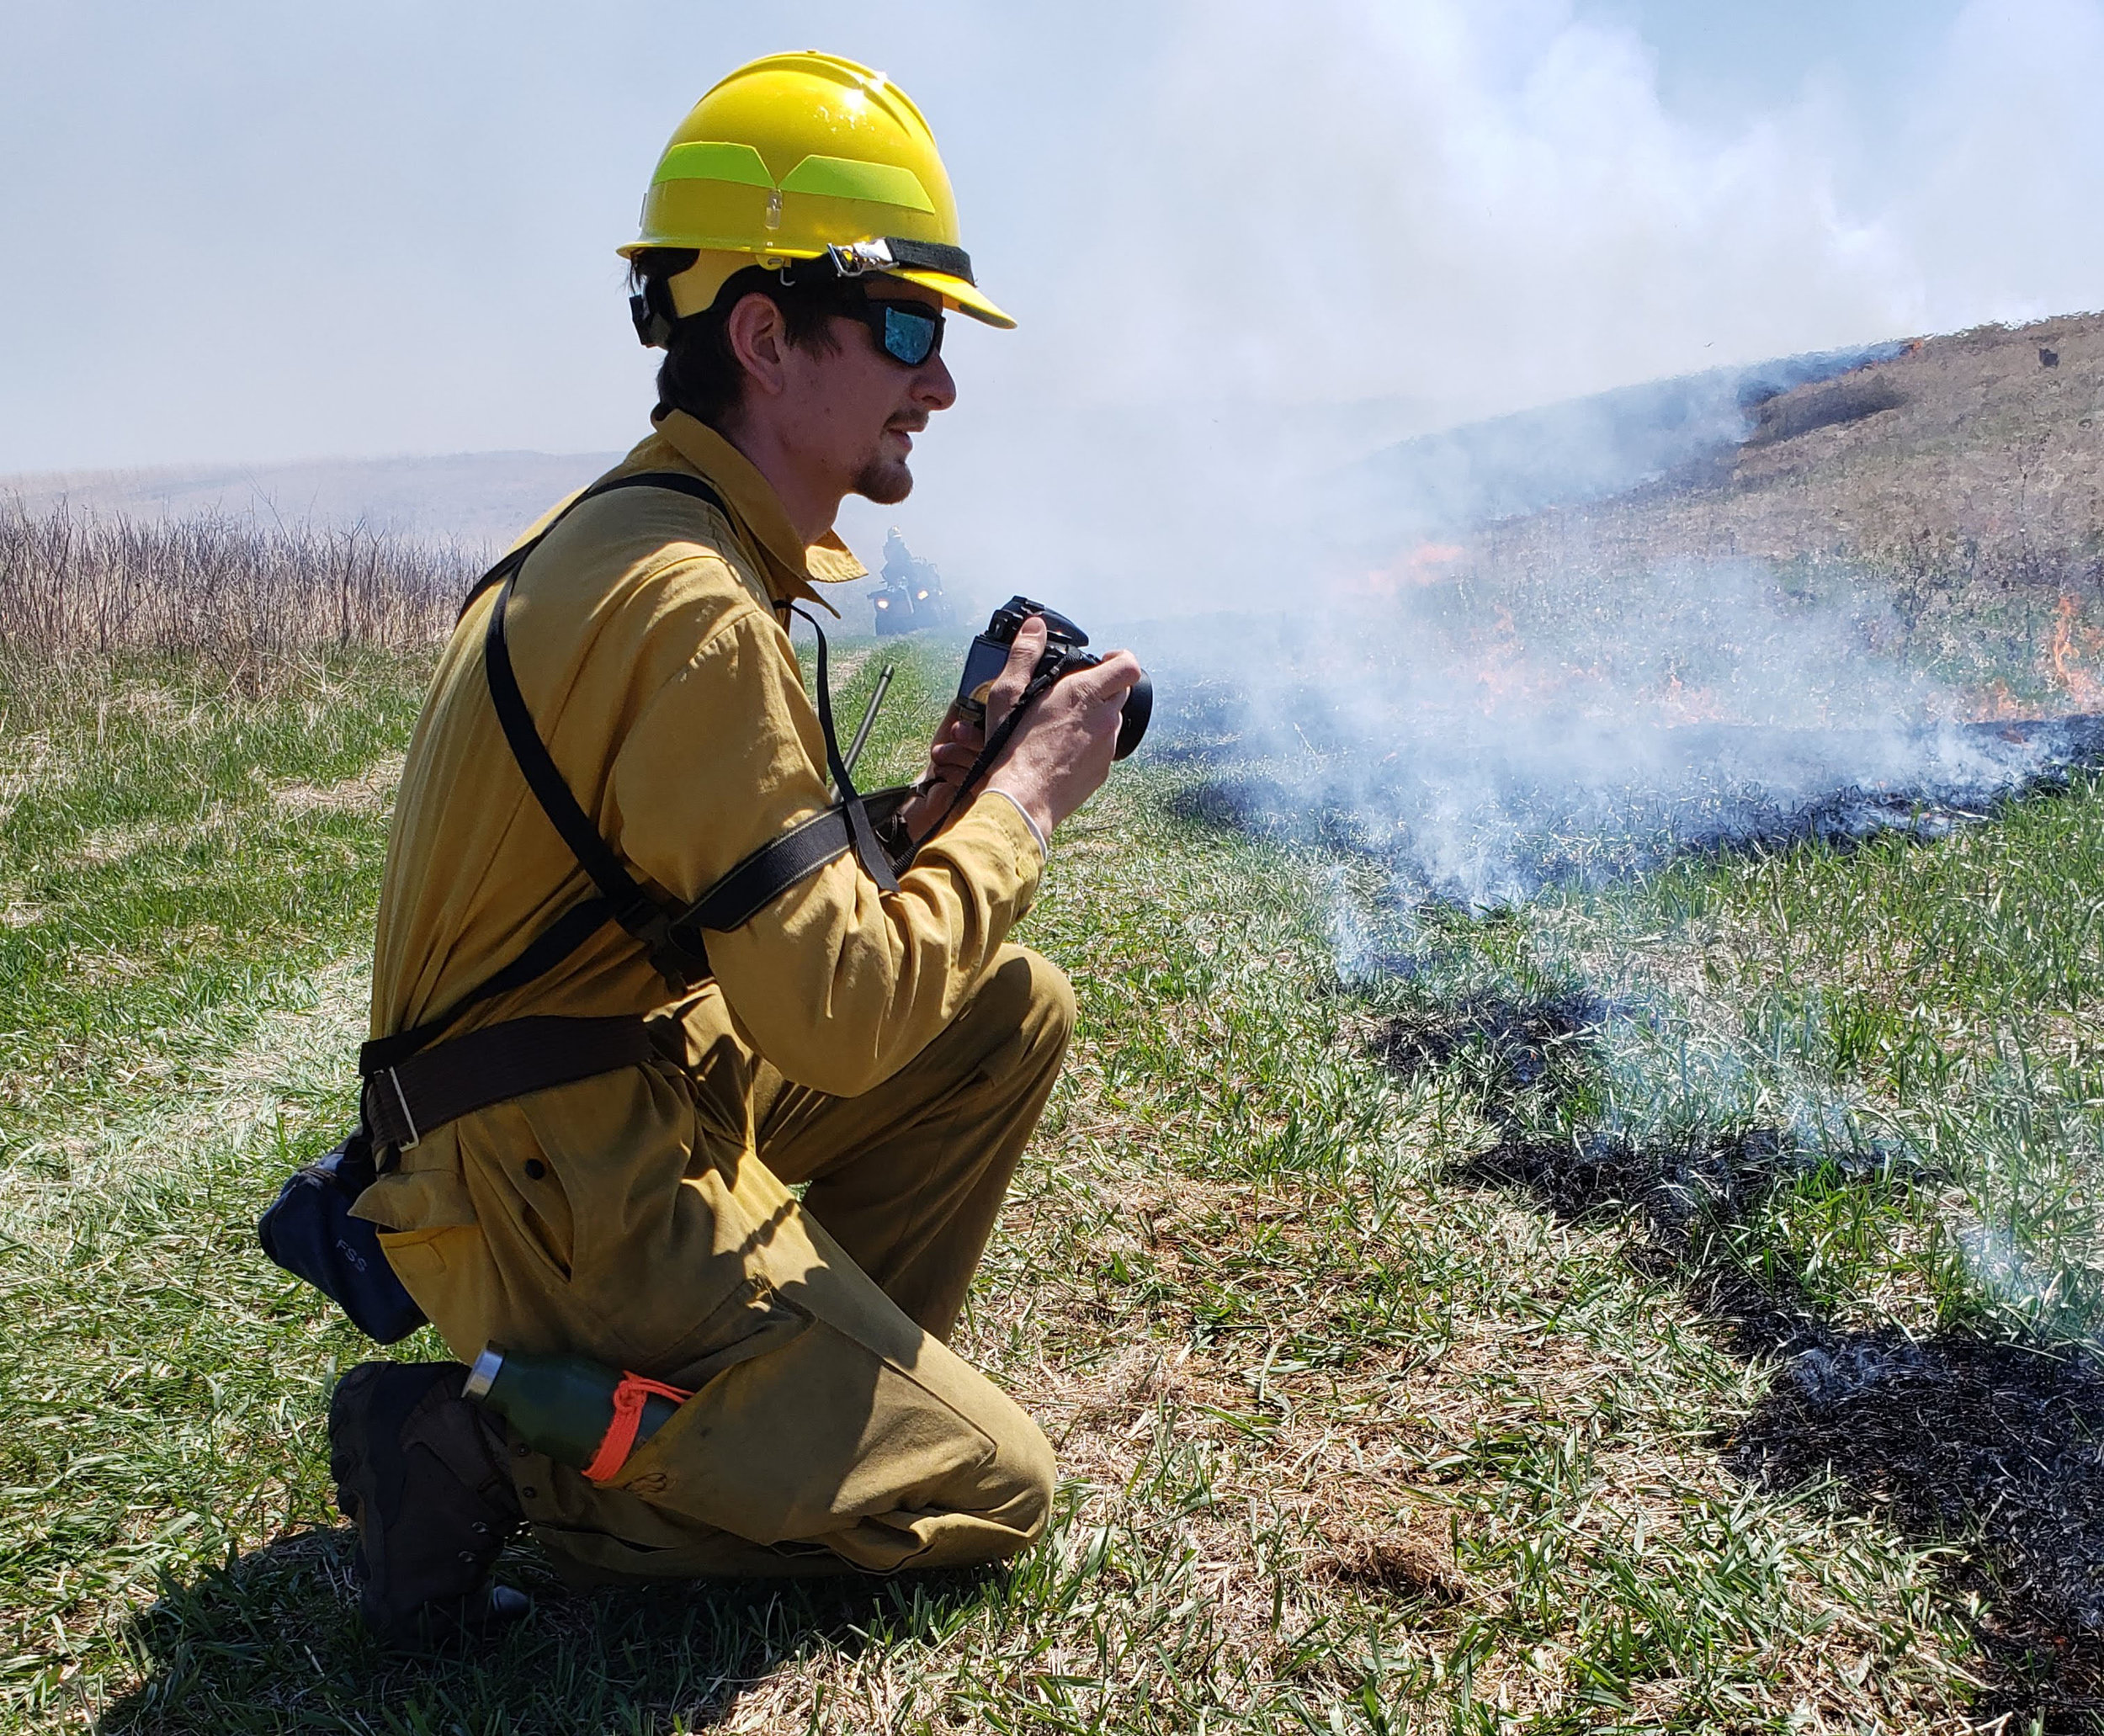 Me, taking photos and videos of a prescribed burn for a before/after project showing the benefits of prescribed burning.